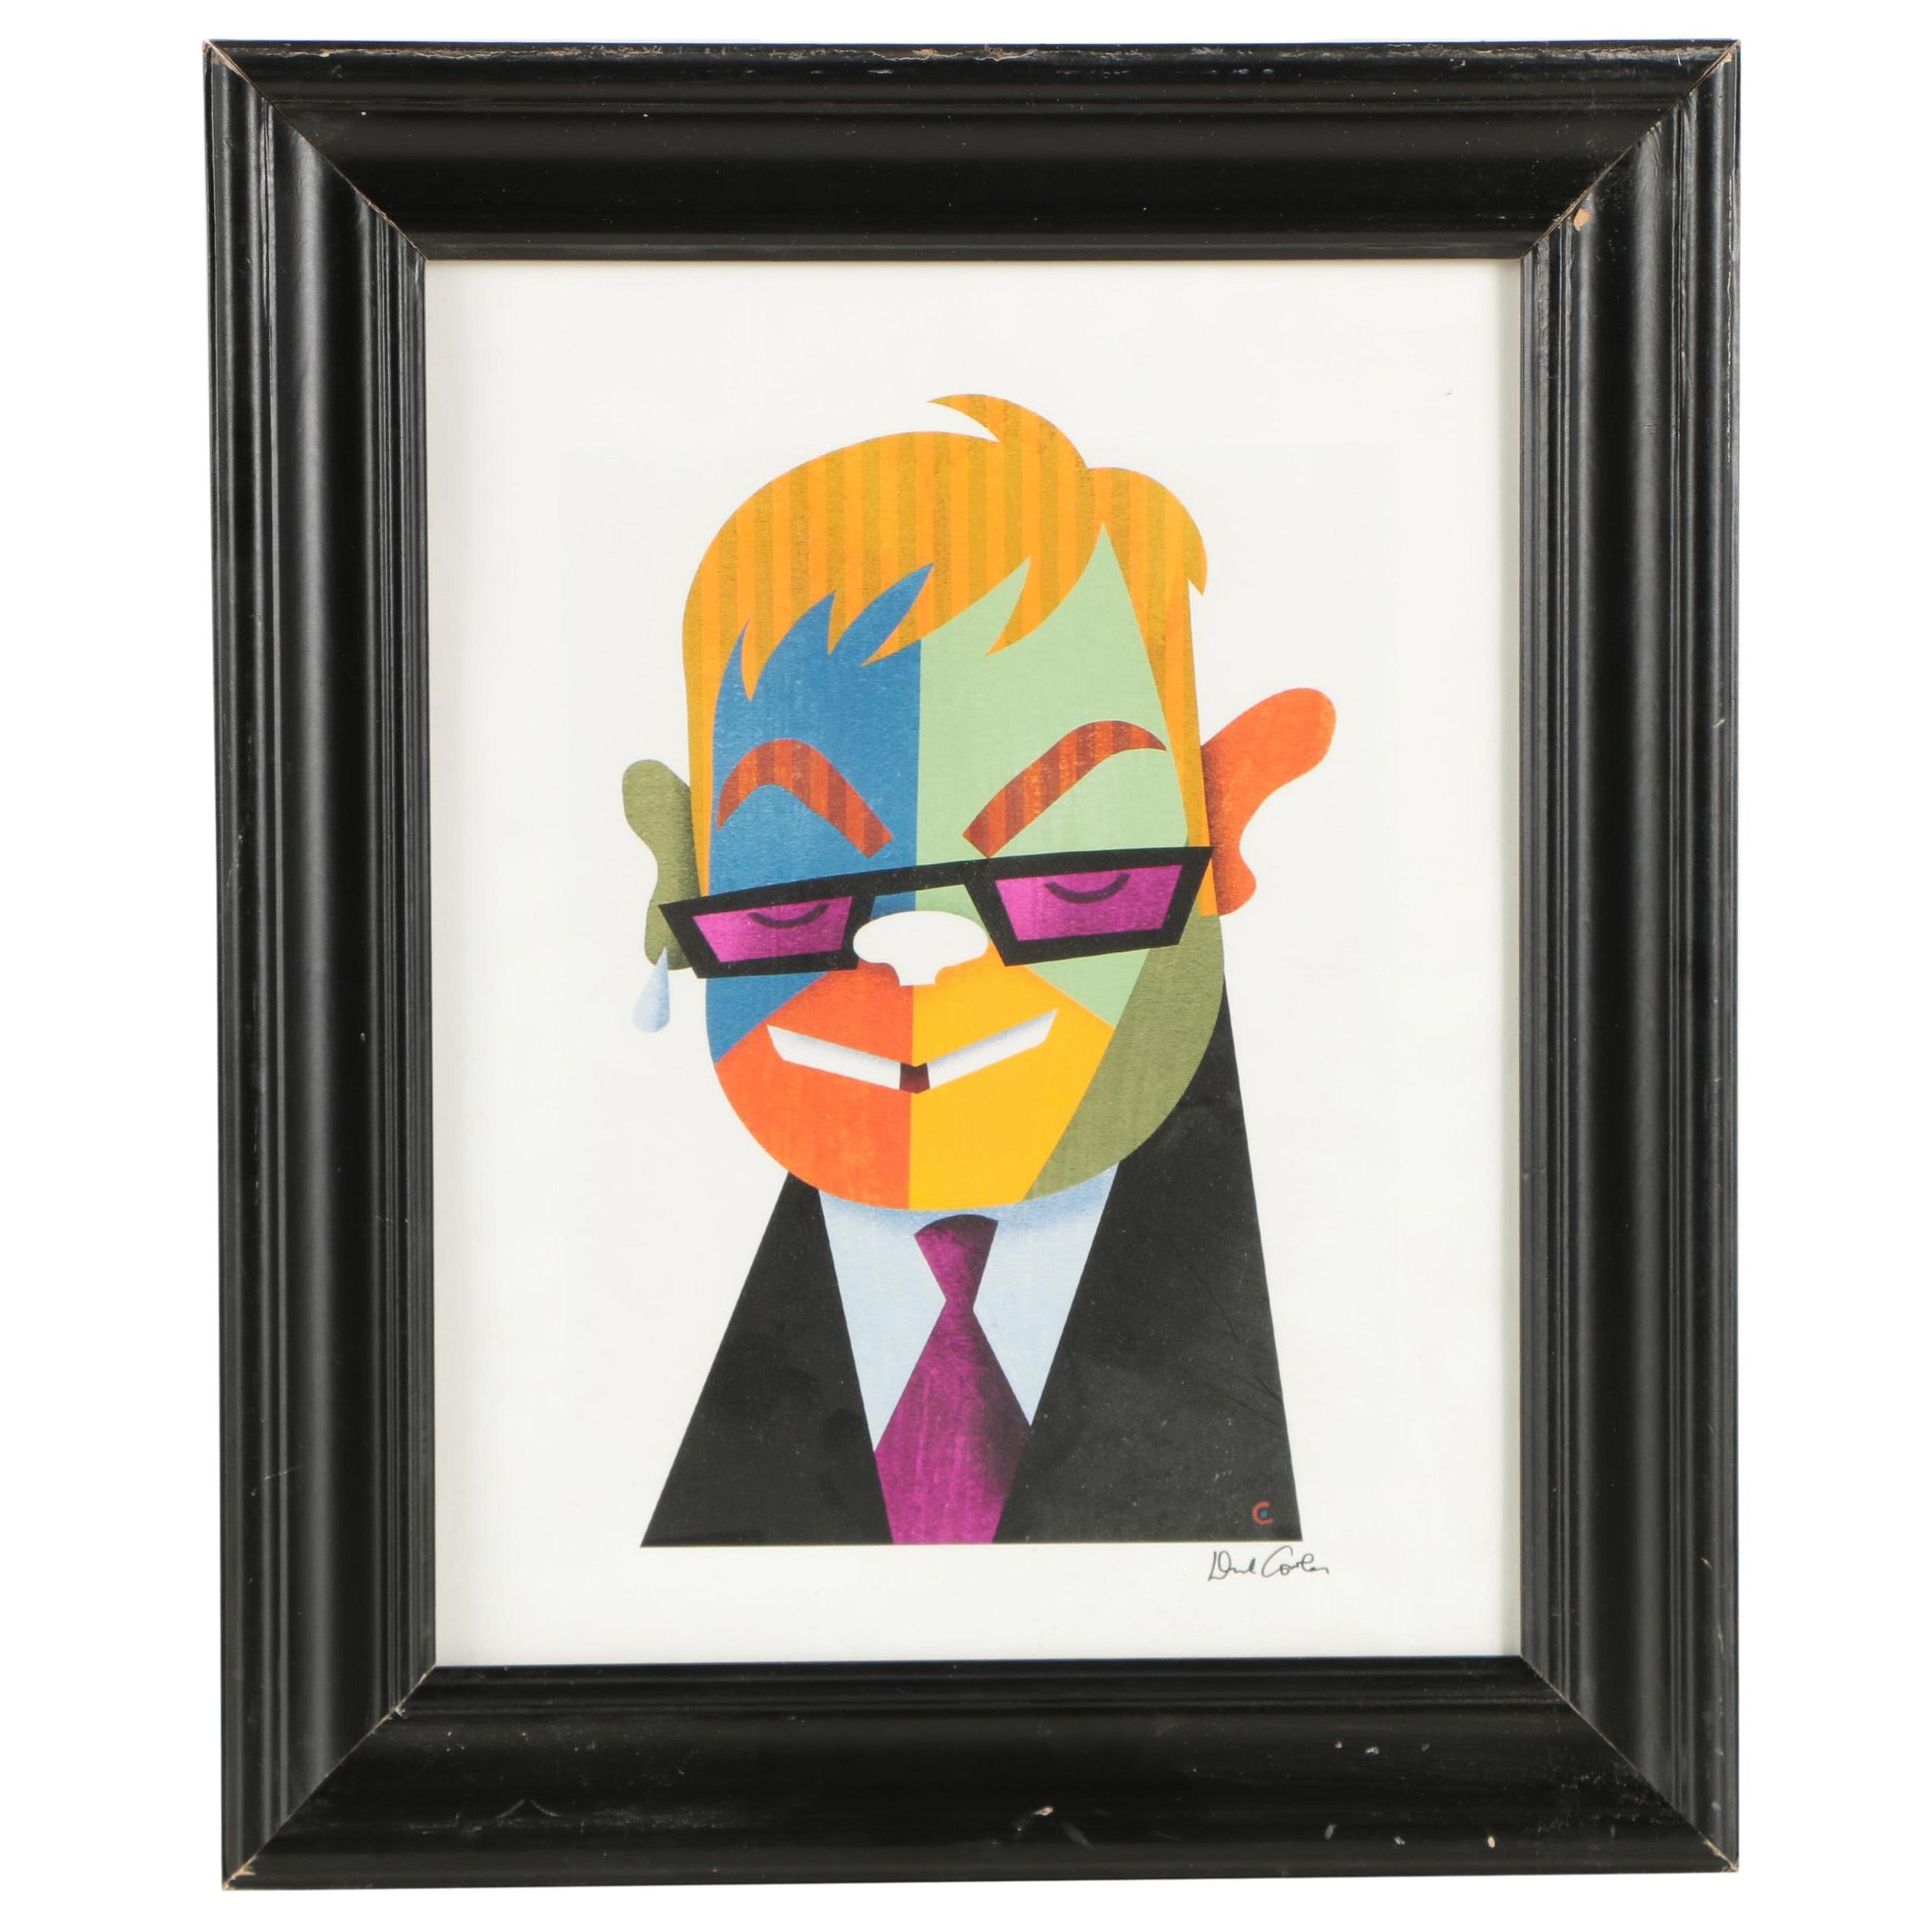 Giclée on Paper After David Cowles of Elton John